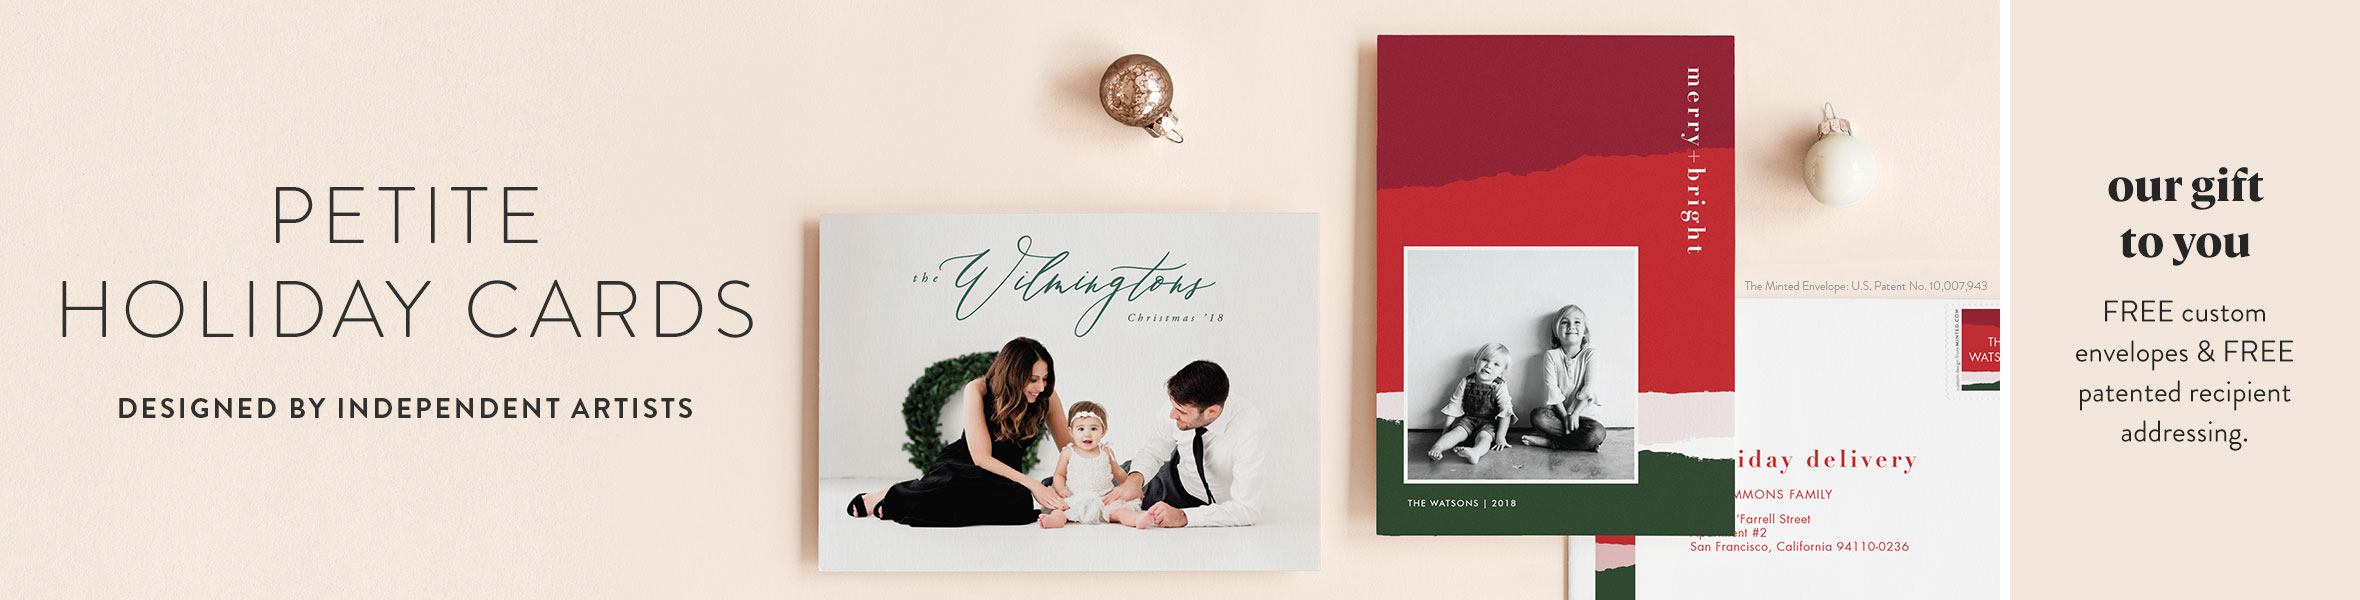 Petite Holiday Cards